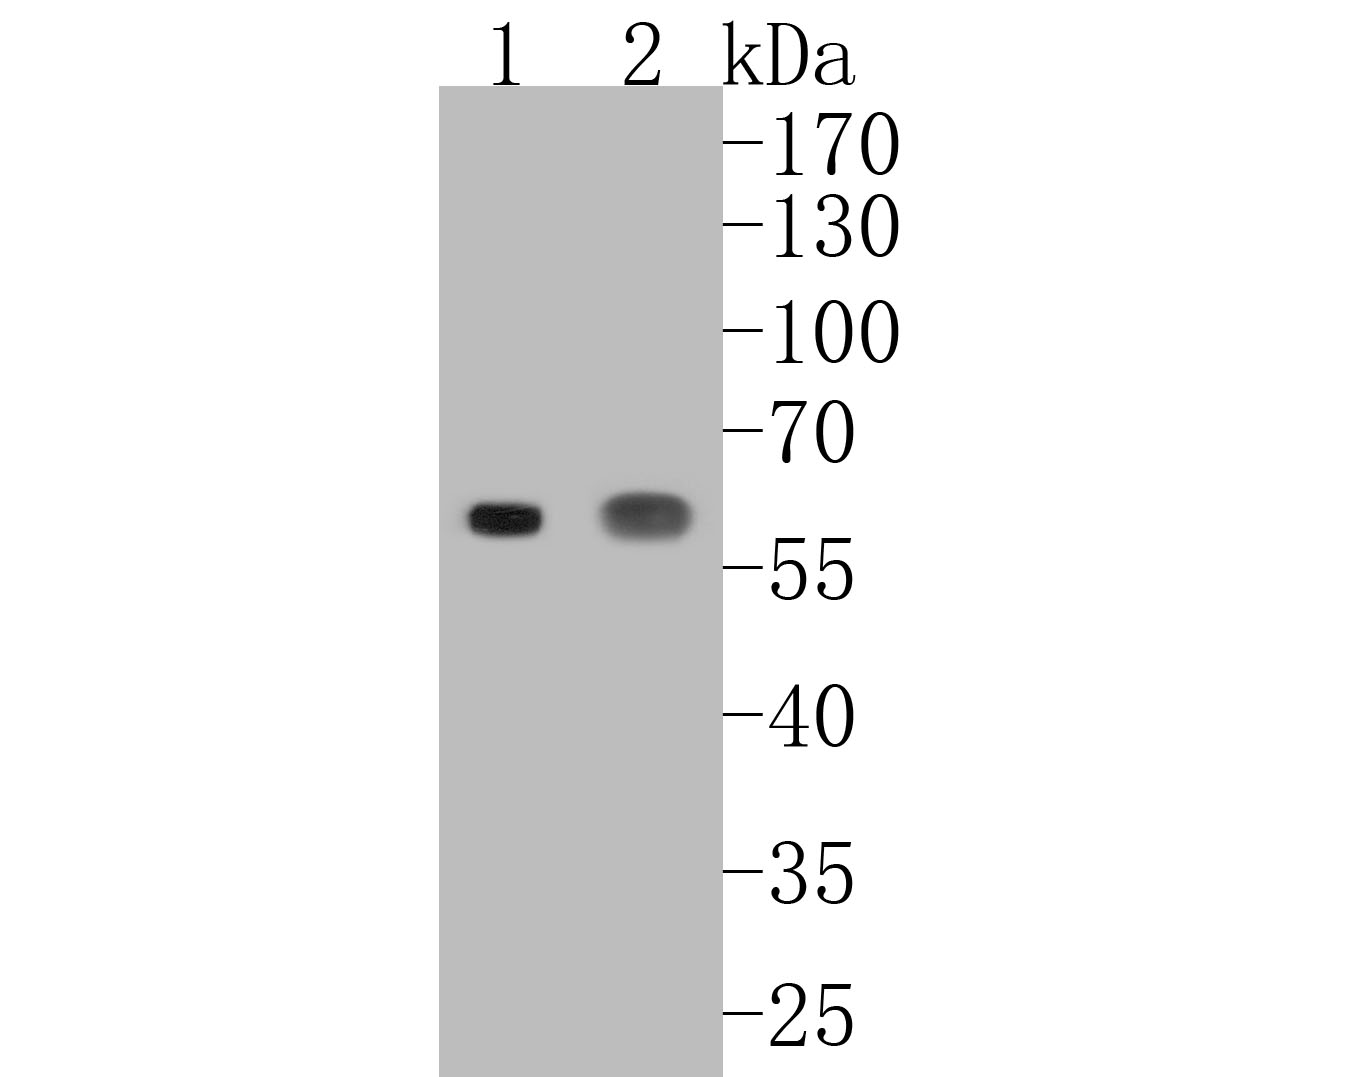 Western blot analysis of CD14 on different lysates. Proteins were transferred to a PVDF membrane and blocked with 5% BSA in PBS for 1 hour at room temperature. The primary antibody (ET1610-85, 1/500) was used in 5% BSA at room temperature for 2 hours. Goat Anti-Rabbit IgG - HRP Secondary Antibody (HA1001) at 1:5,000 dilution was used for 1 hour at room temperature.<br />  Positive control: <br />  Lane 1: human liver tissue lysate<br />  Lane 2: SW480 cell lysate